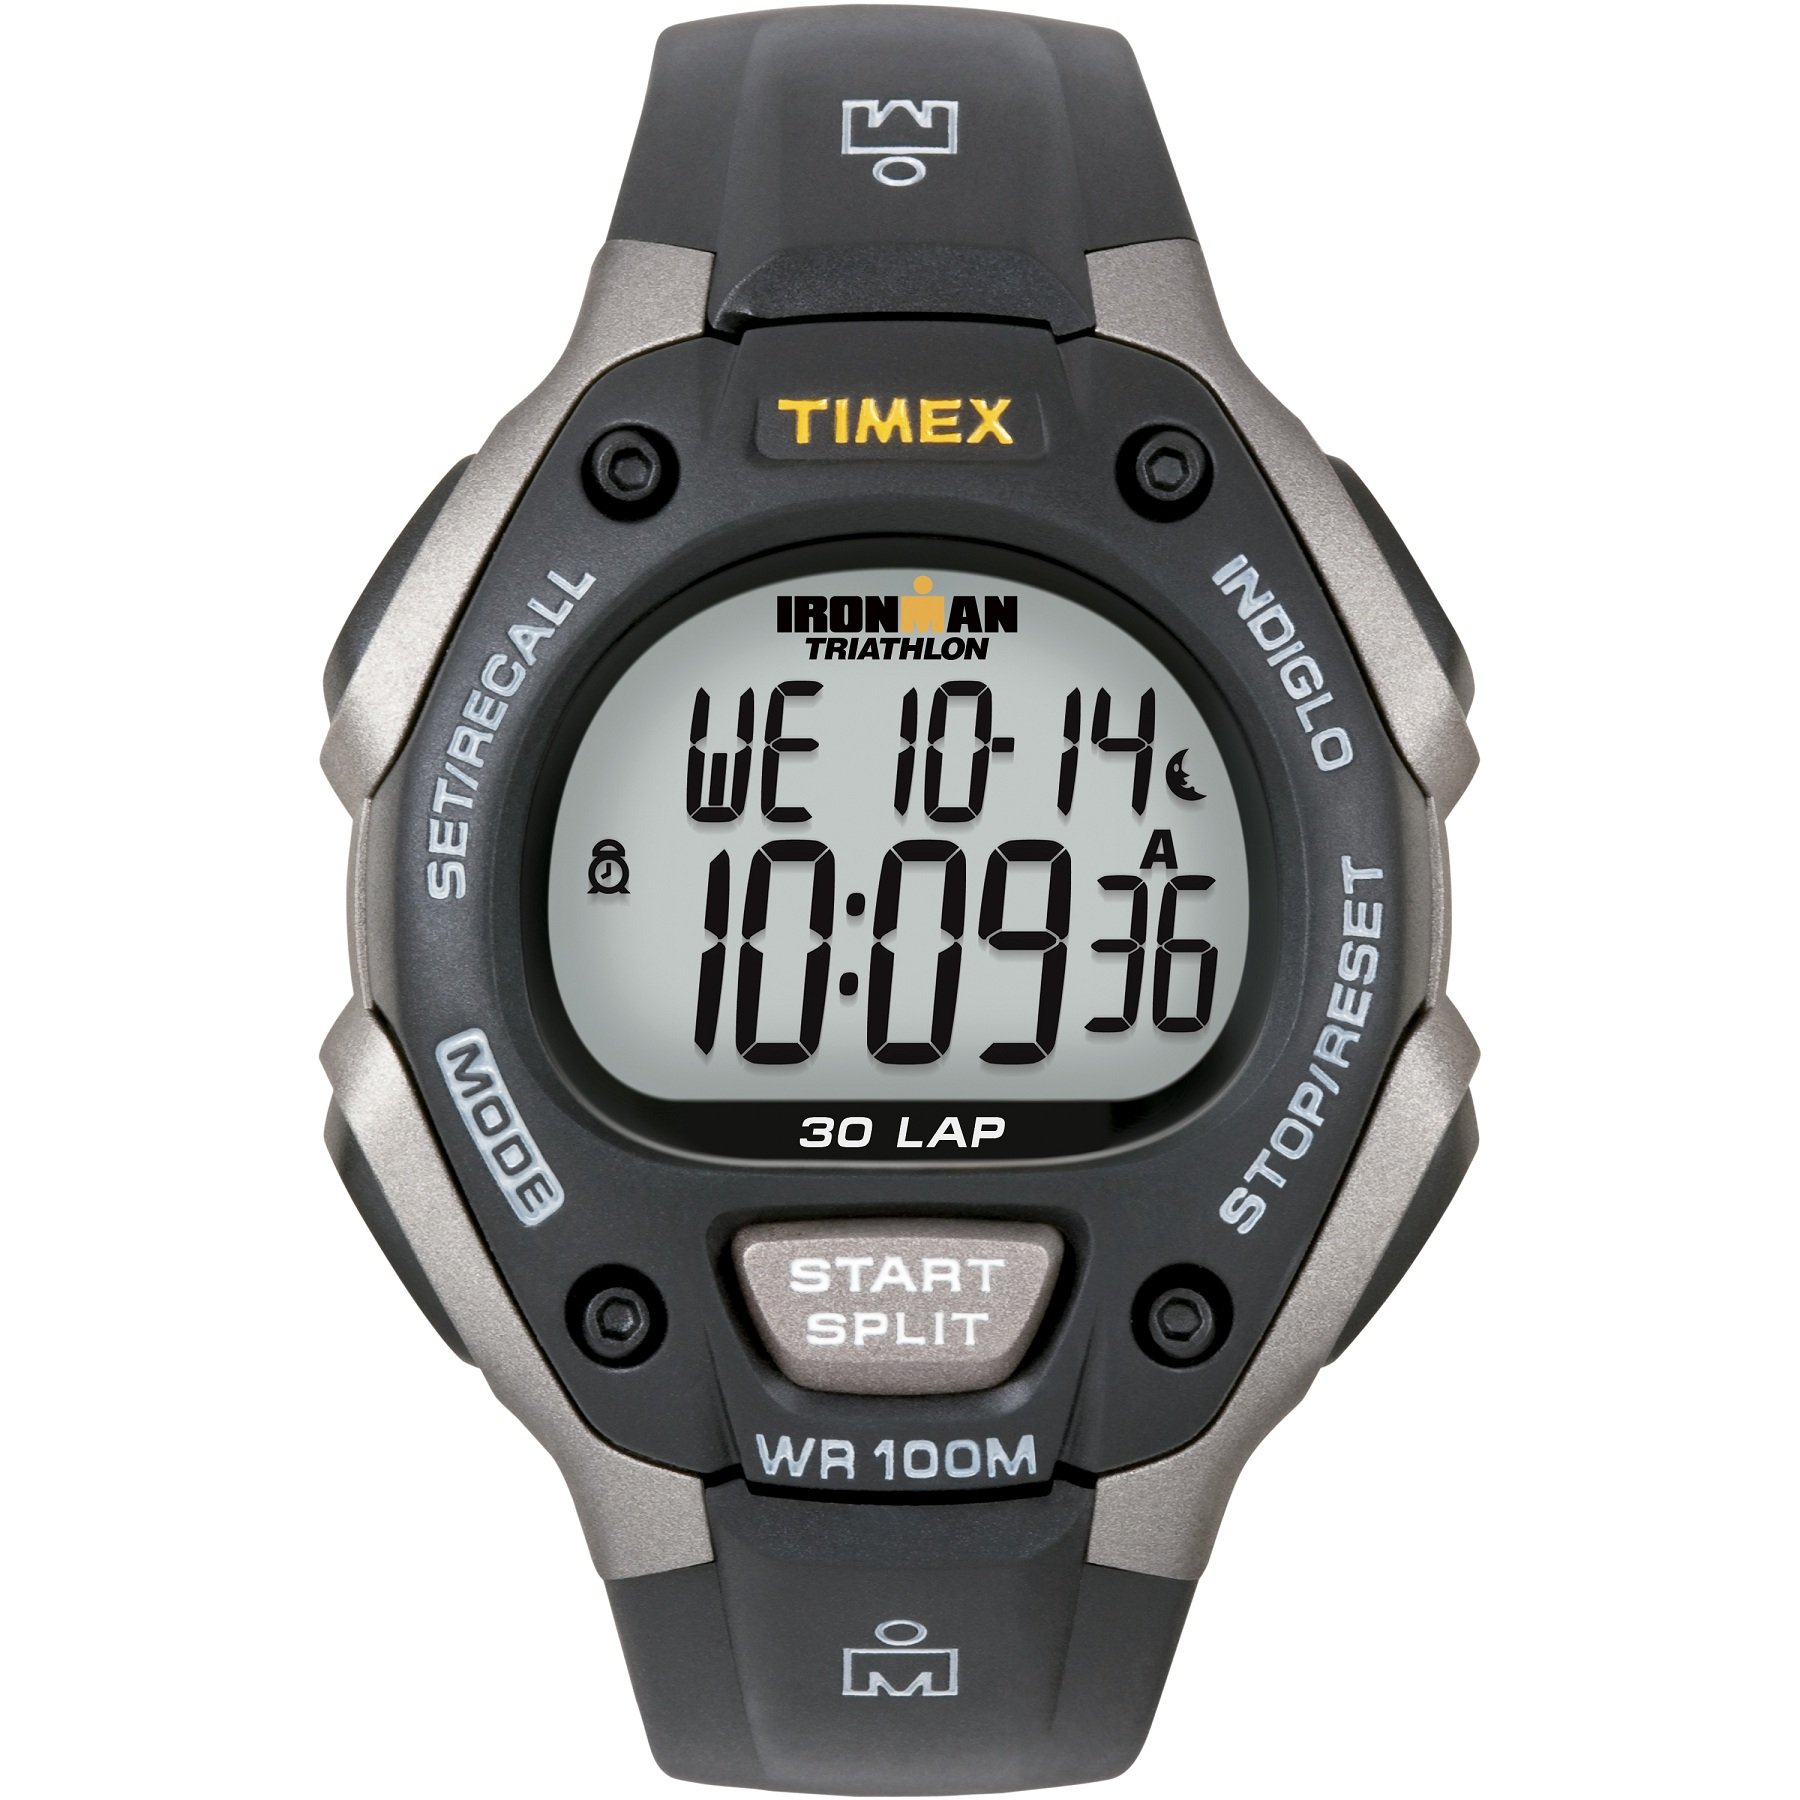 Timex Ironman Classic 30 Full-Size Watch product image